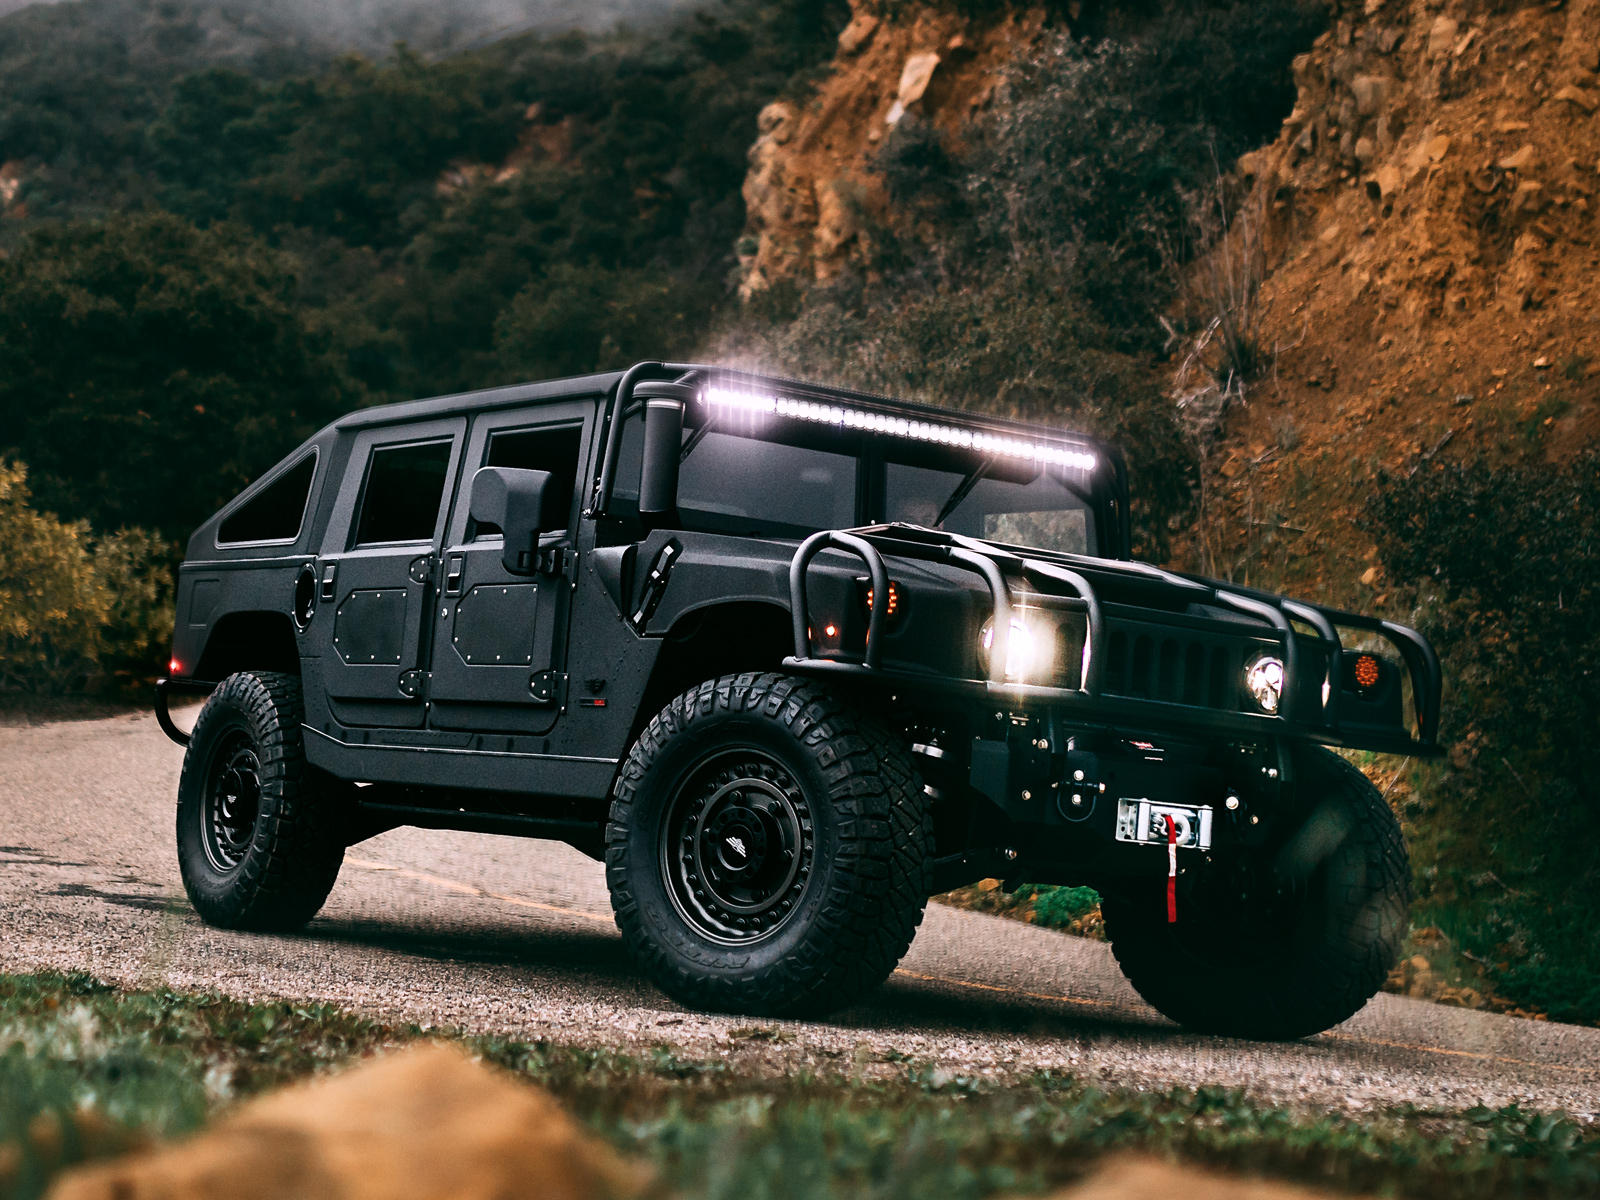 Reborn Hummer H1 Is So Much Better Than The Original